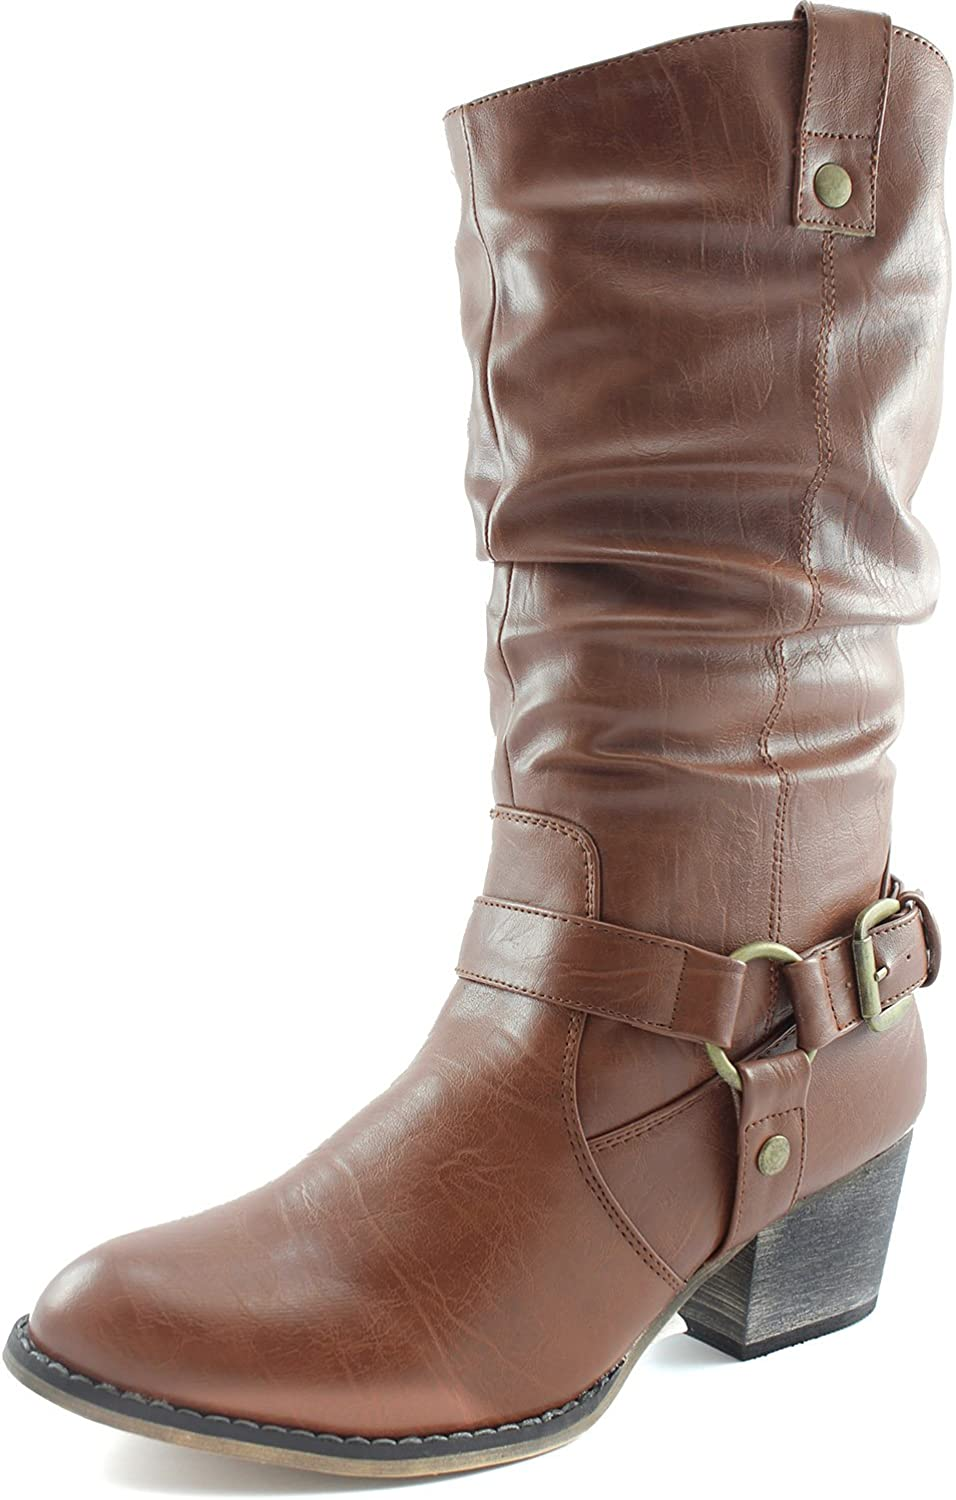 DailyShoes Women's Slouch Mid Calf Ankle Strap Buckle Western-01 Style Cowboy Boots